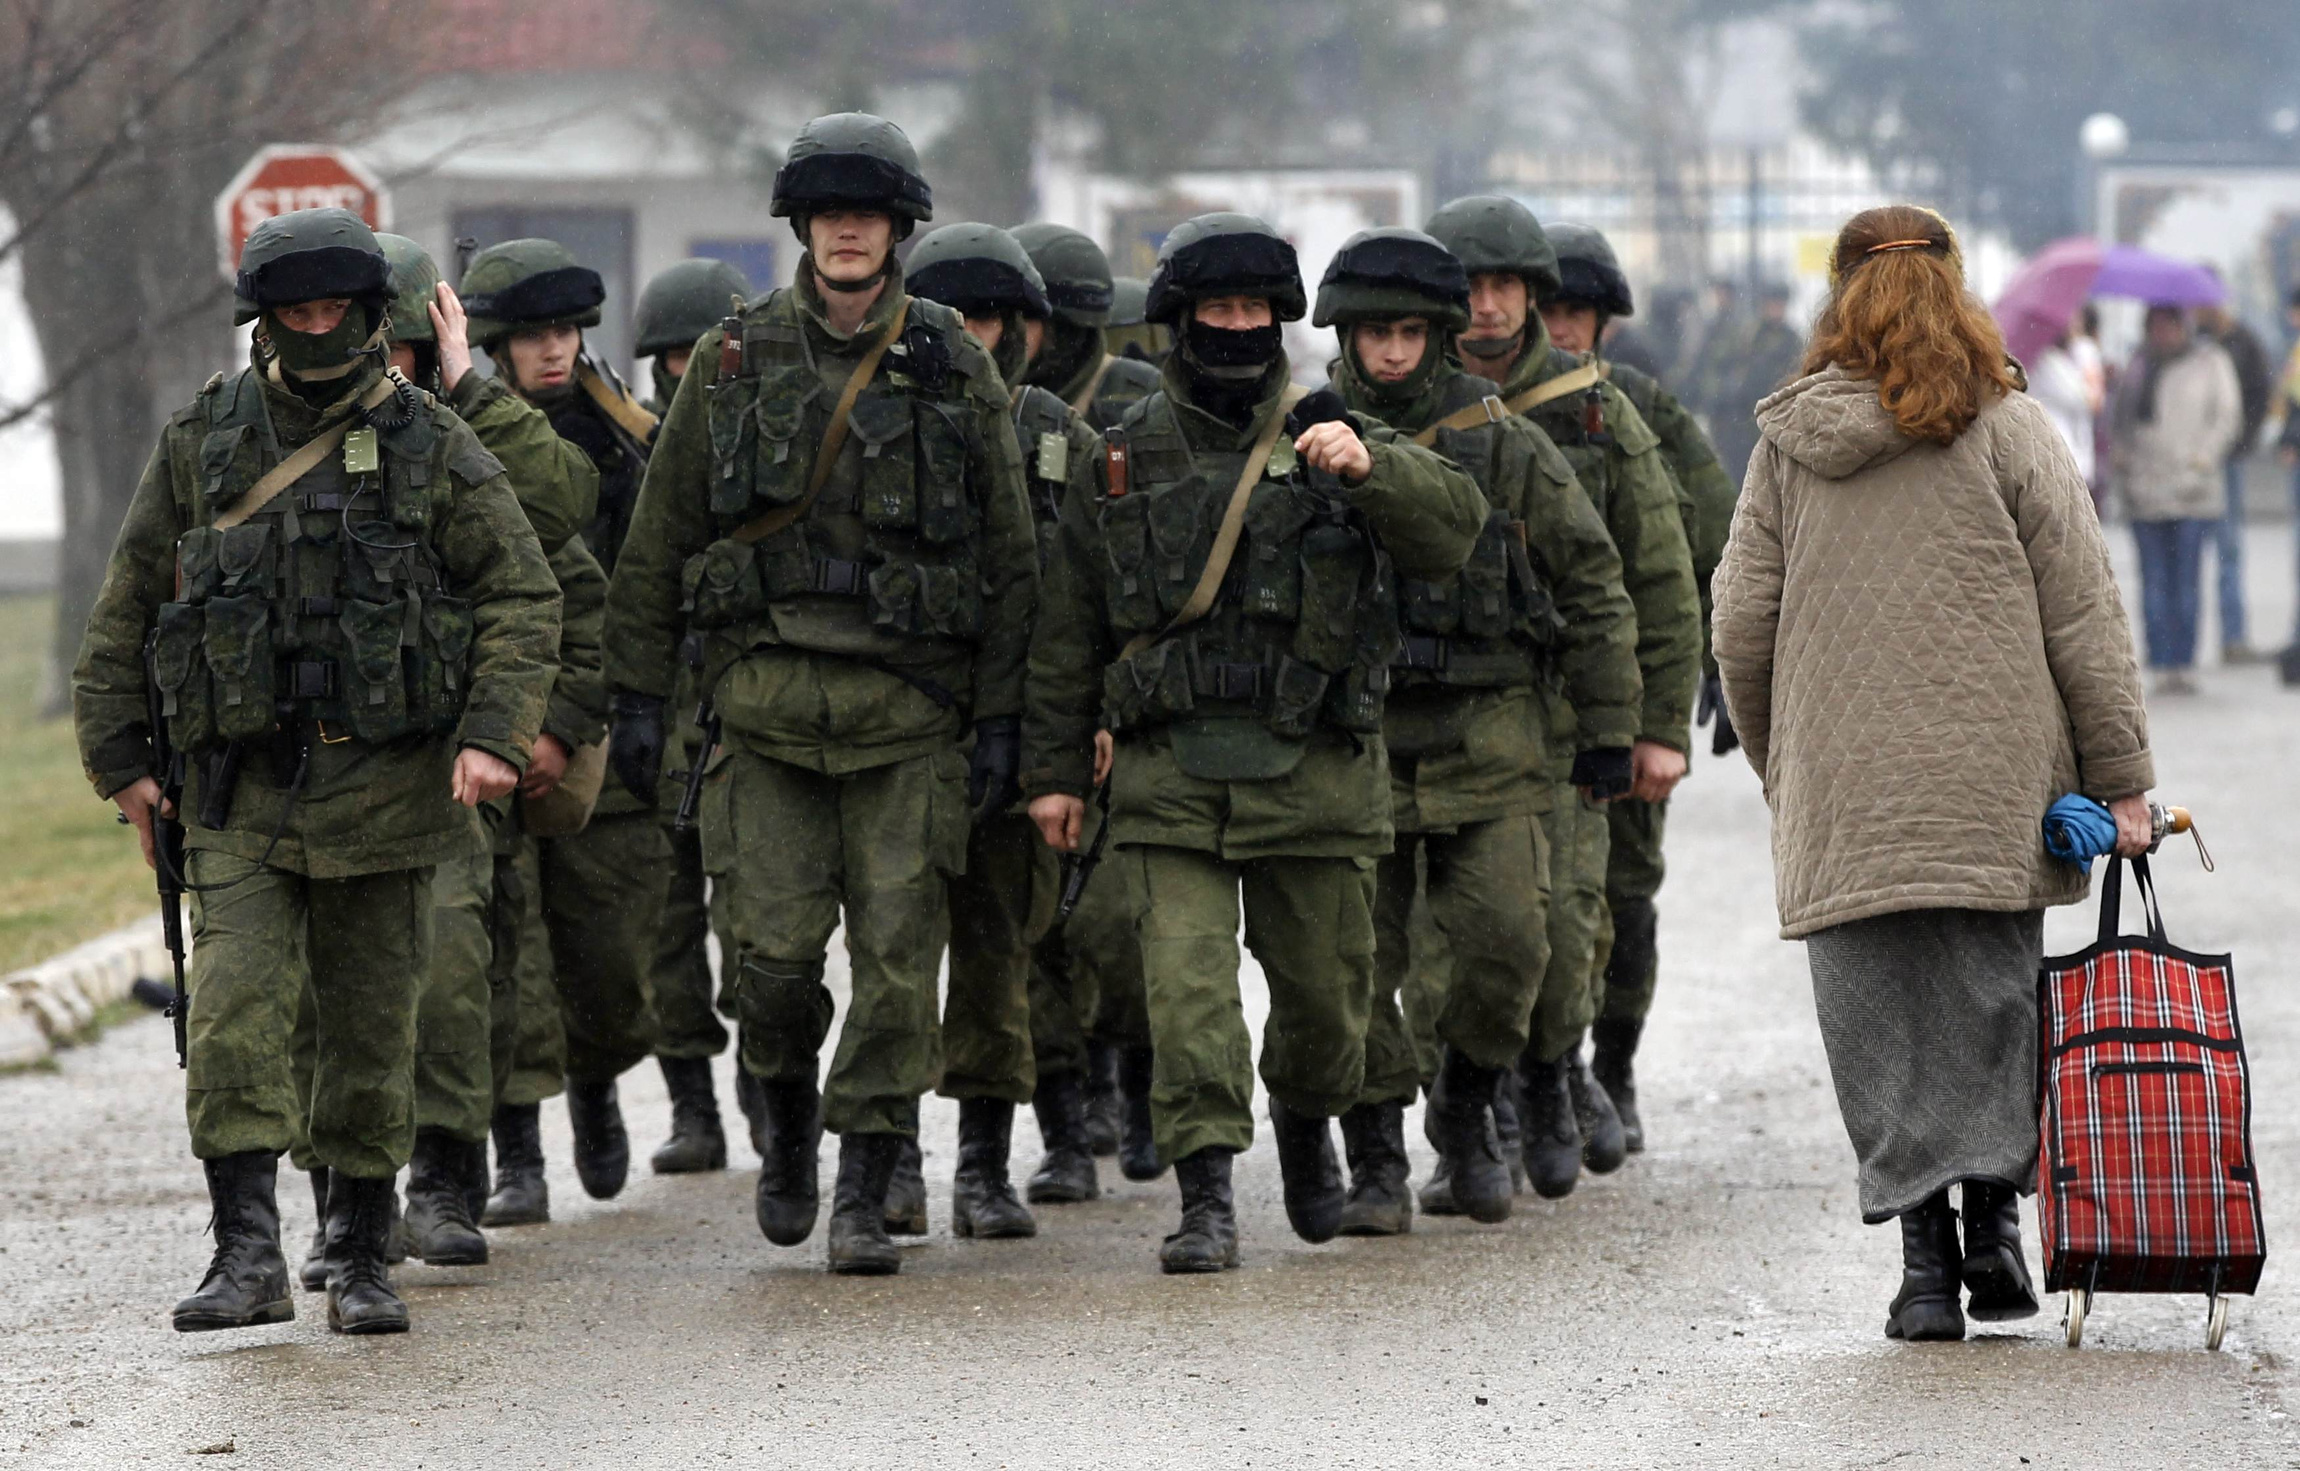 Shevchuk spoke against the introduction of troops in the Crimea 02.03.2014 73